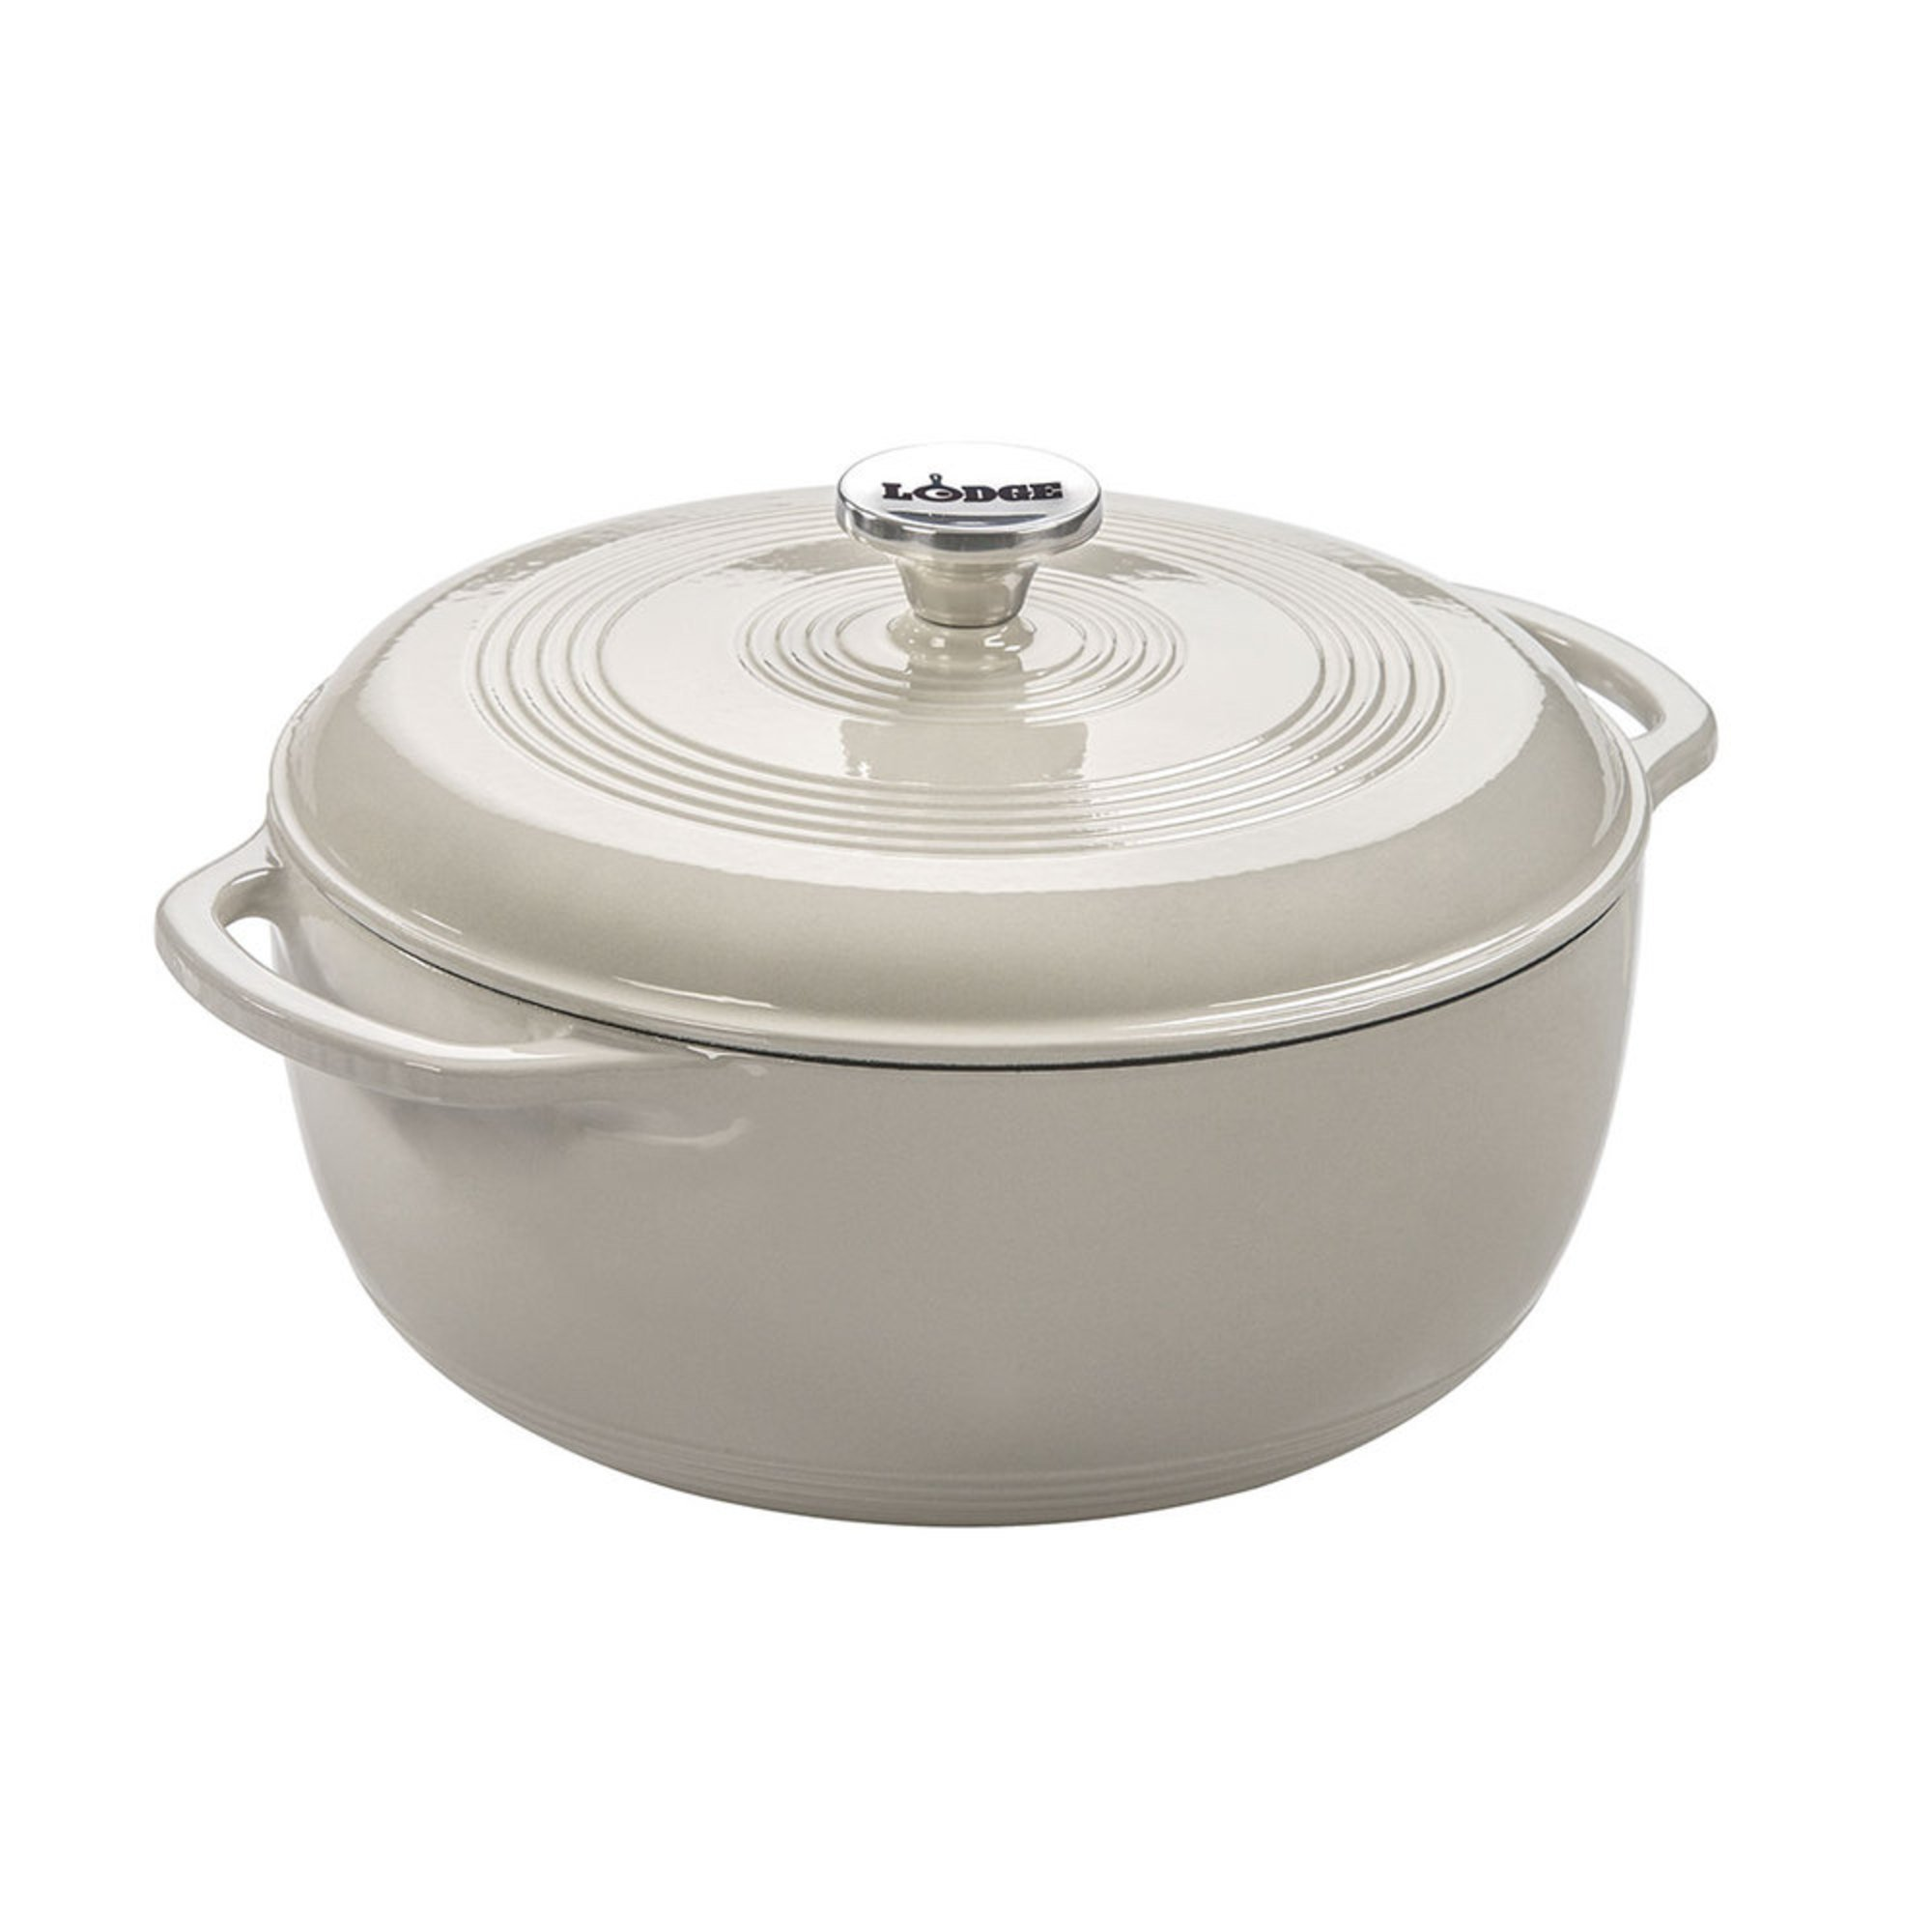 lodge 6 quart enameled cast iron dutch oven oyster white dutch ovens casseroles shop your. Black Bedroom Furniture Sets. Home Design Ideas